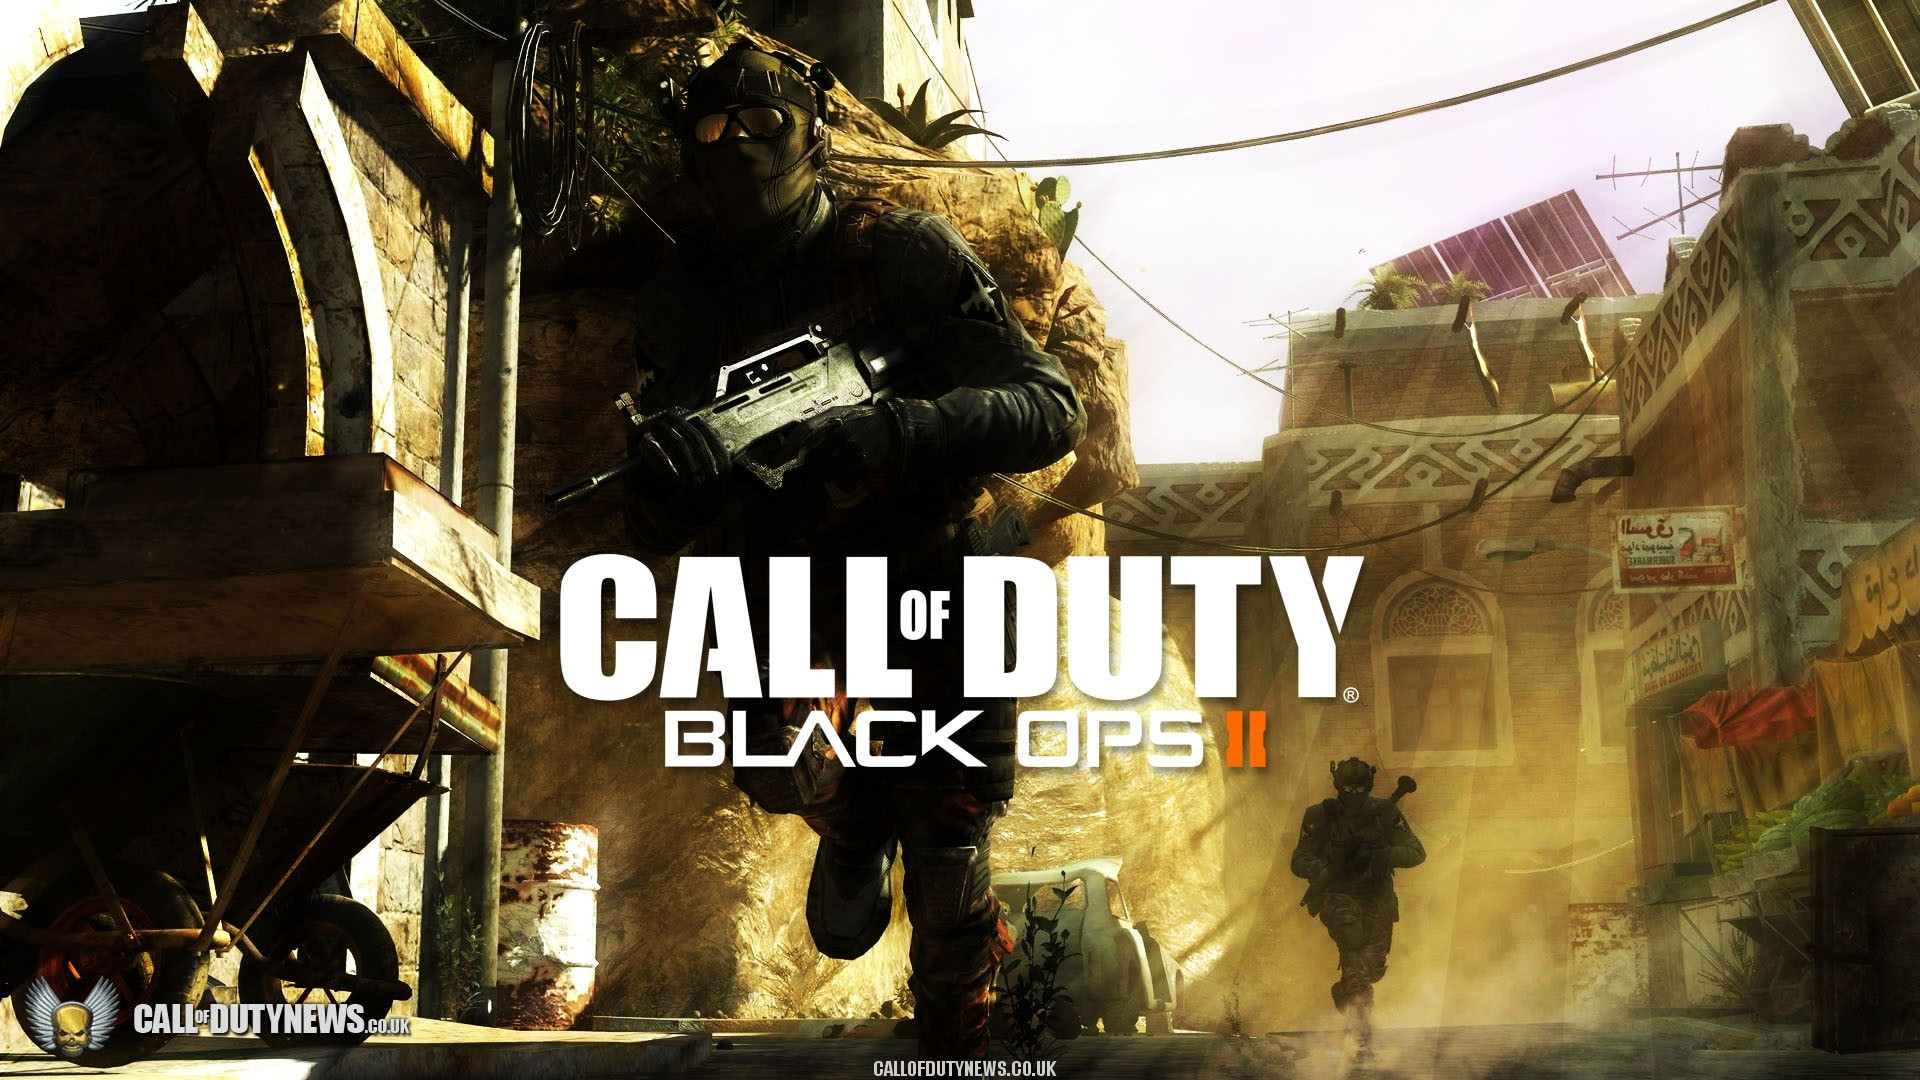 matchmaking black ops 2 Looking to meet new friends on the games you play use our matchmaking  system to let people know what you're playing and how to connect with you.